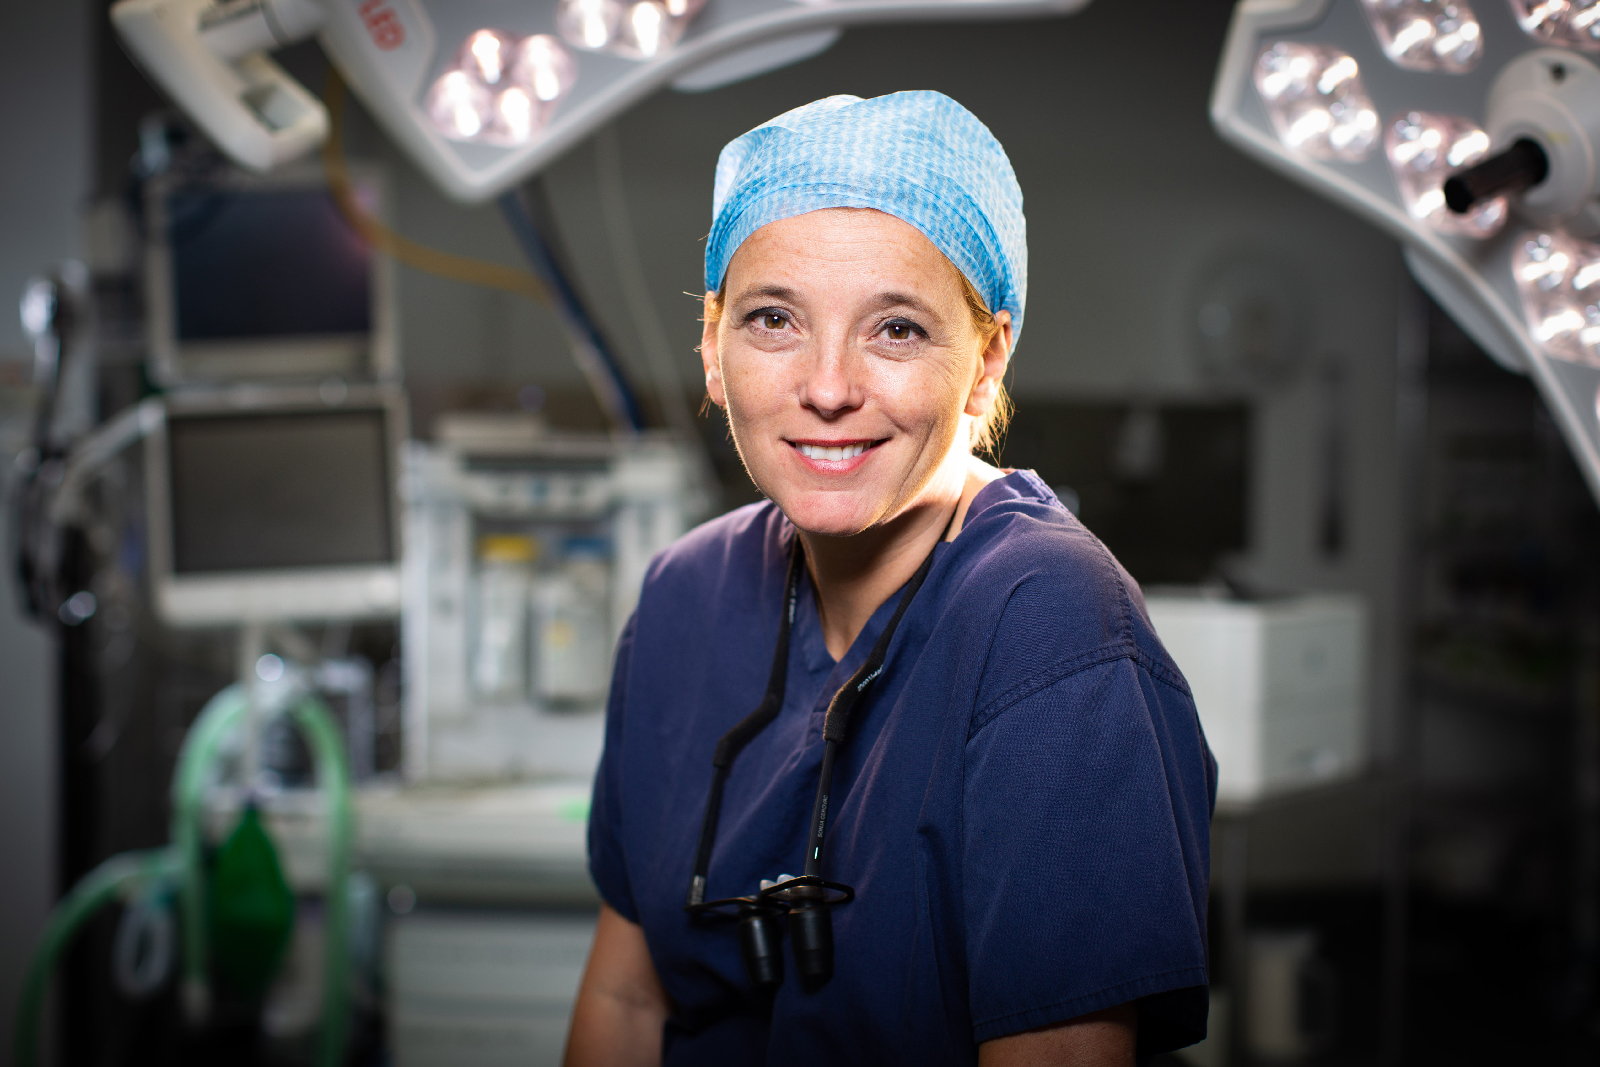 Sonja Cerovac platic surgeon